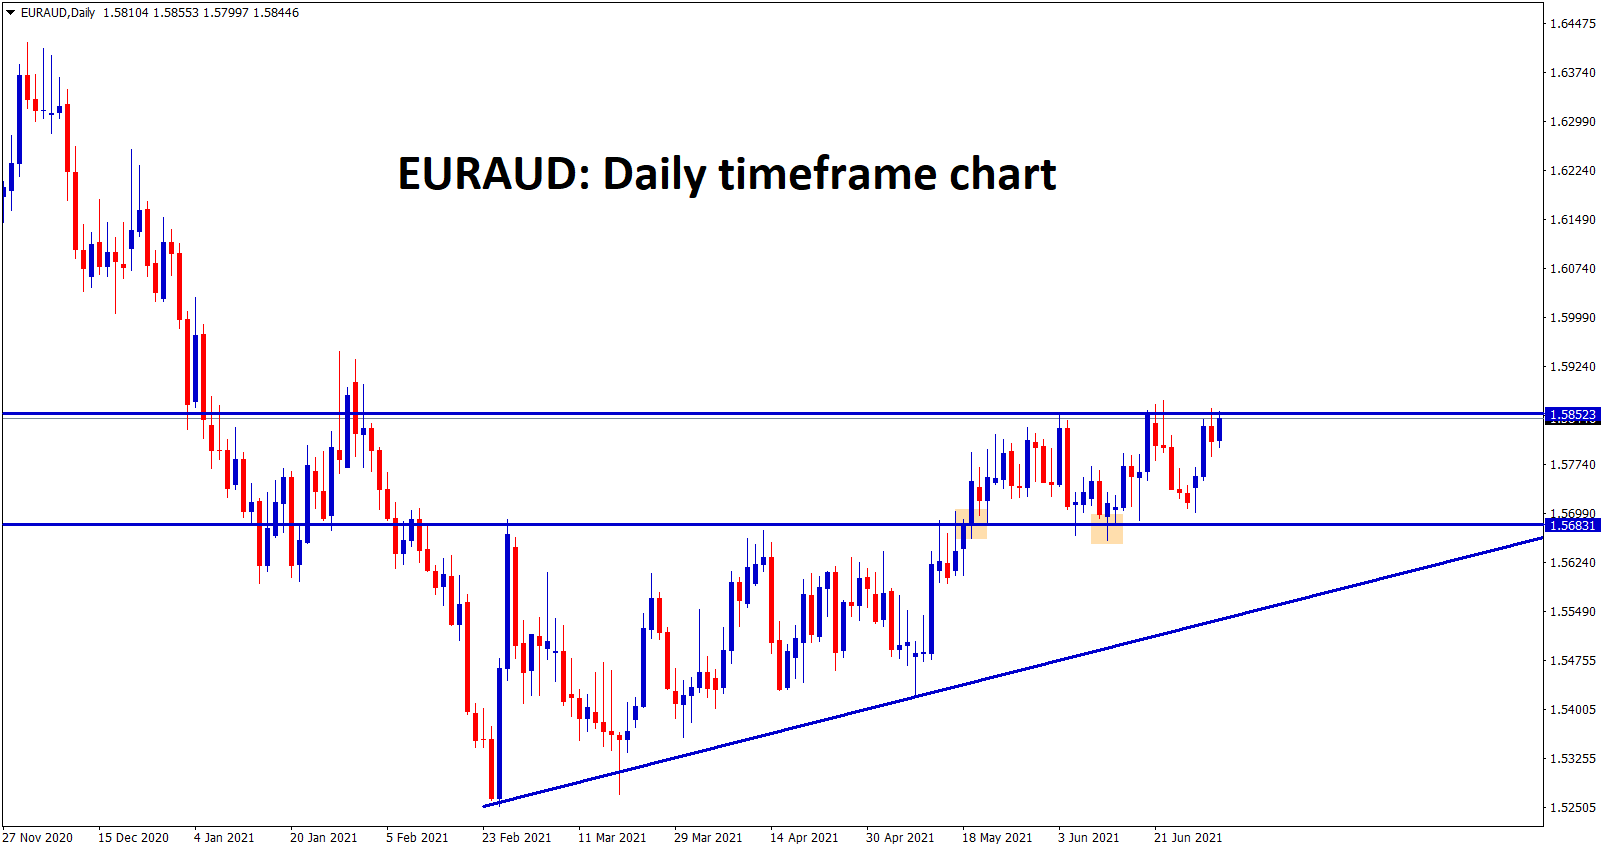 EURAUD broke the top of the Ascending Triangle now its trying to break further resistance levels